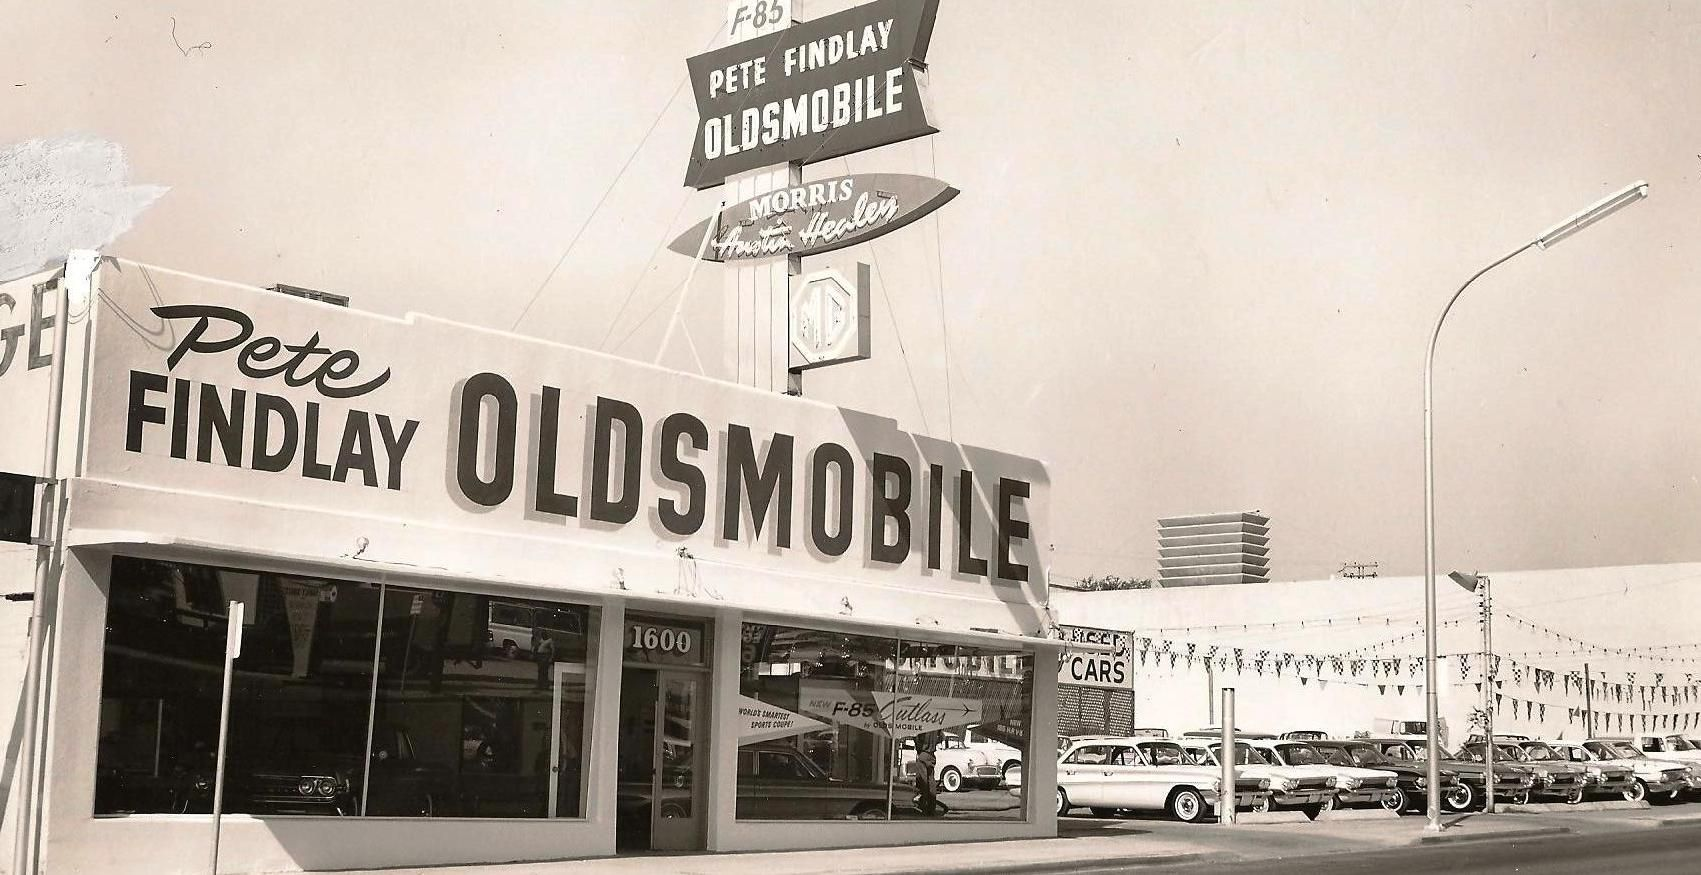 Our Patriarch S First Store In Las Vegas Pete Findlay Oldsmobile